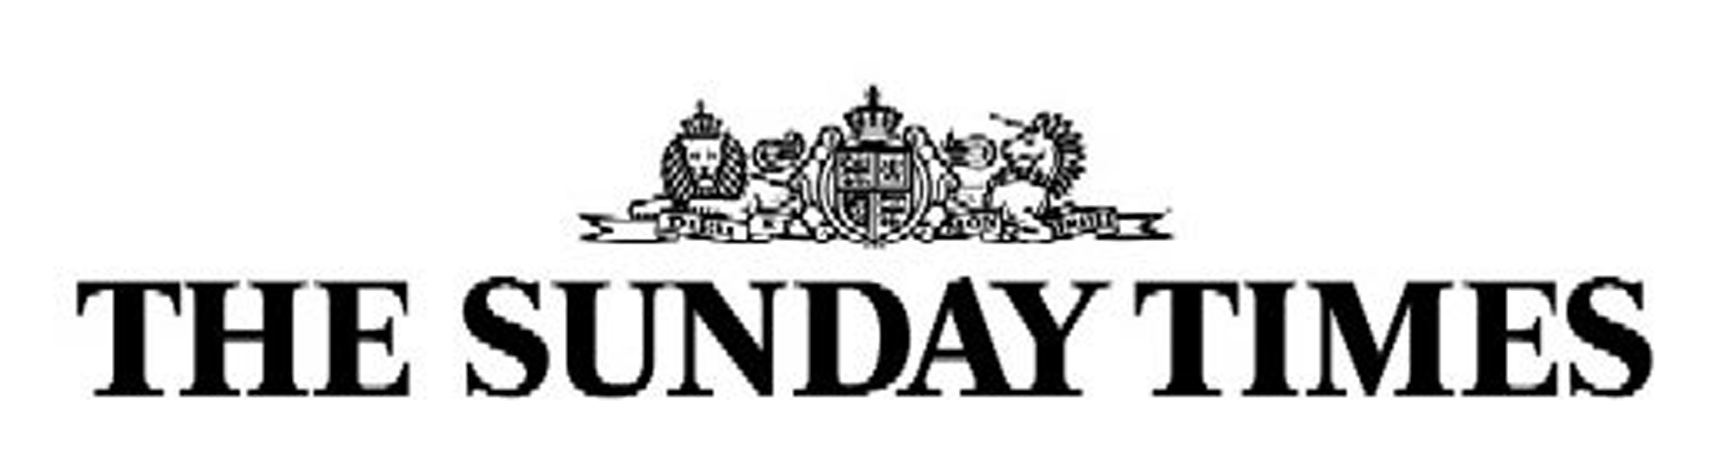 The Sunday Times | Ready, Steady, Science!: www.readysteadyscience.com/home/the-sunday-times